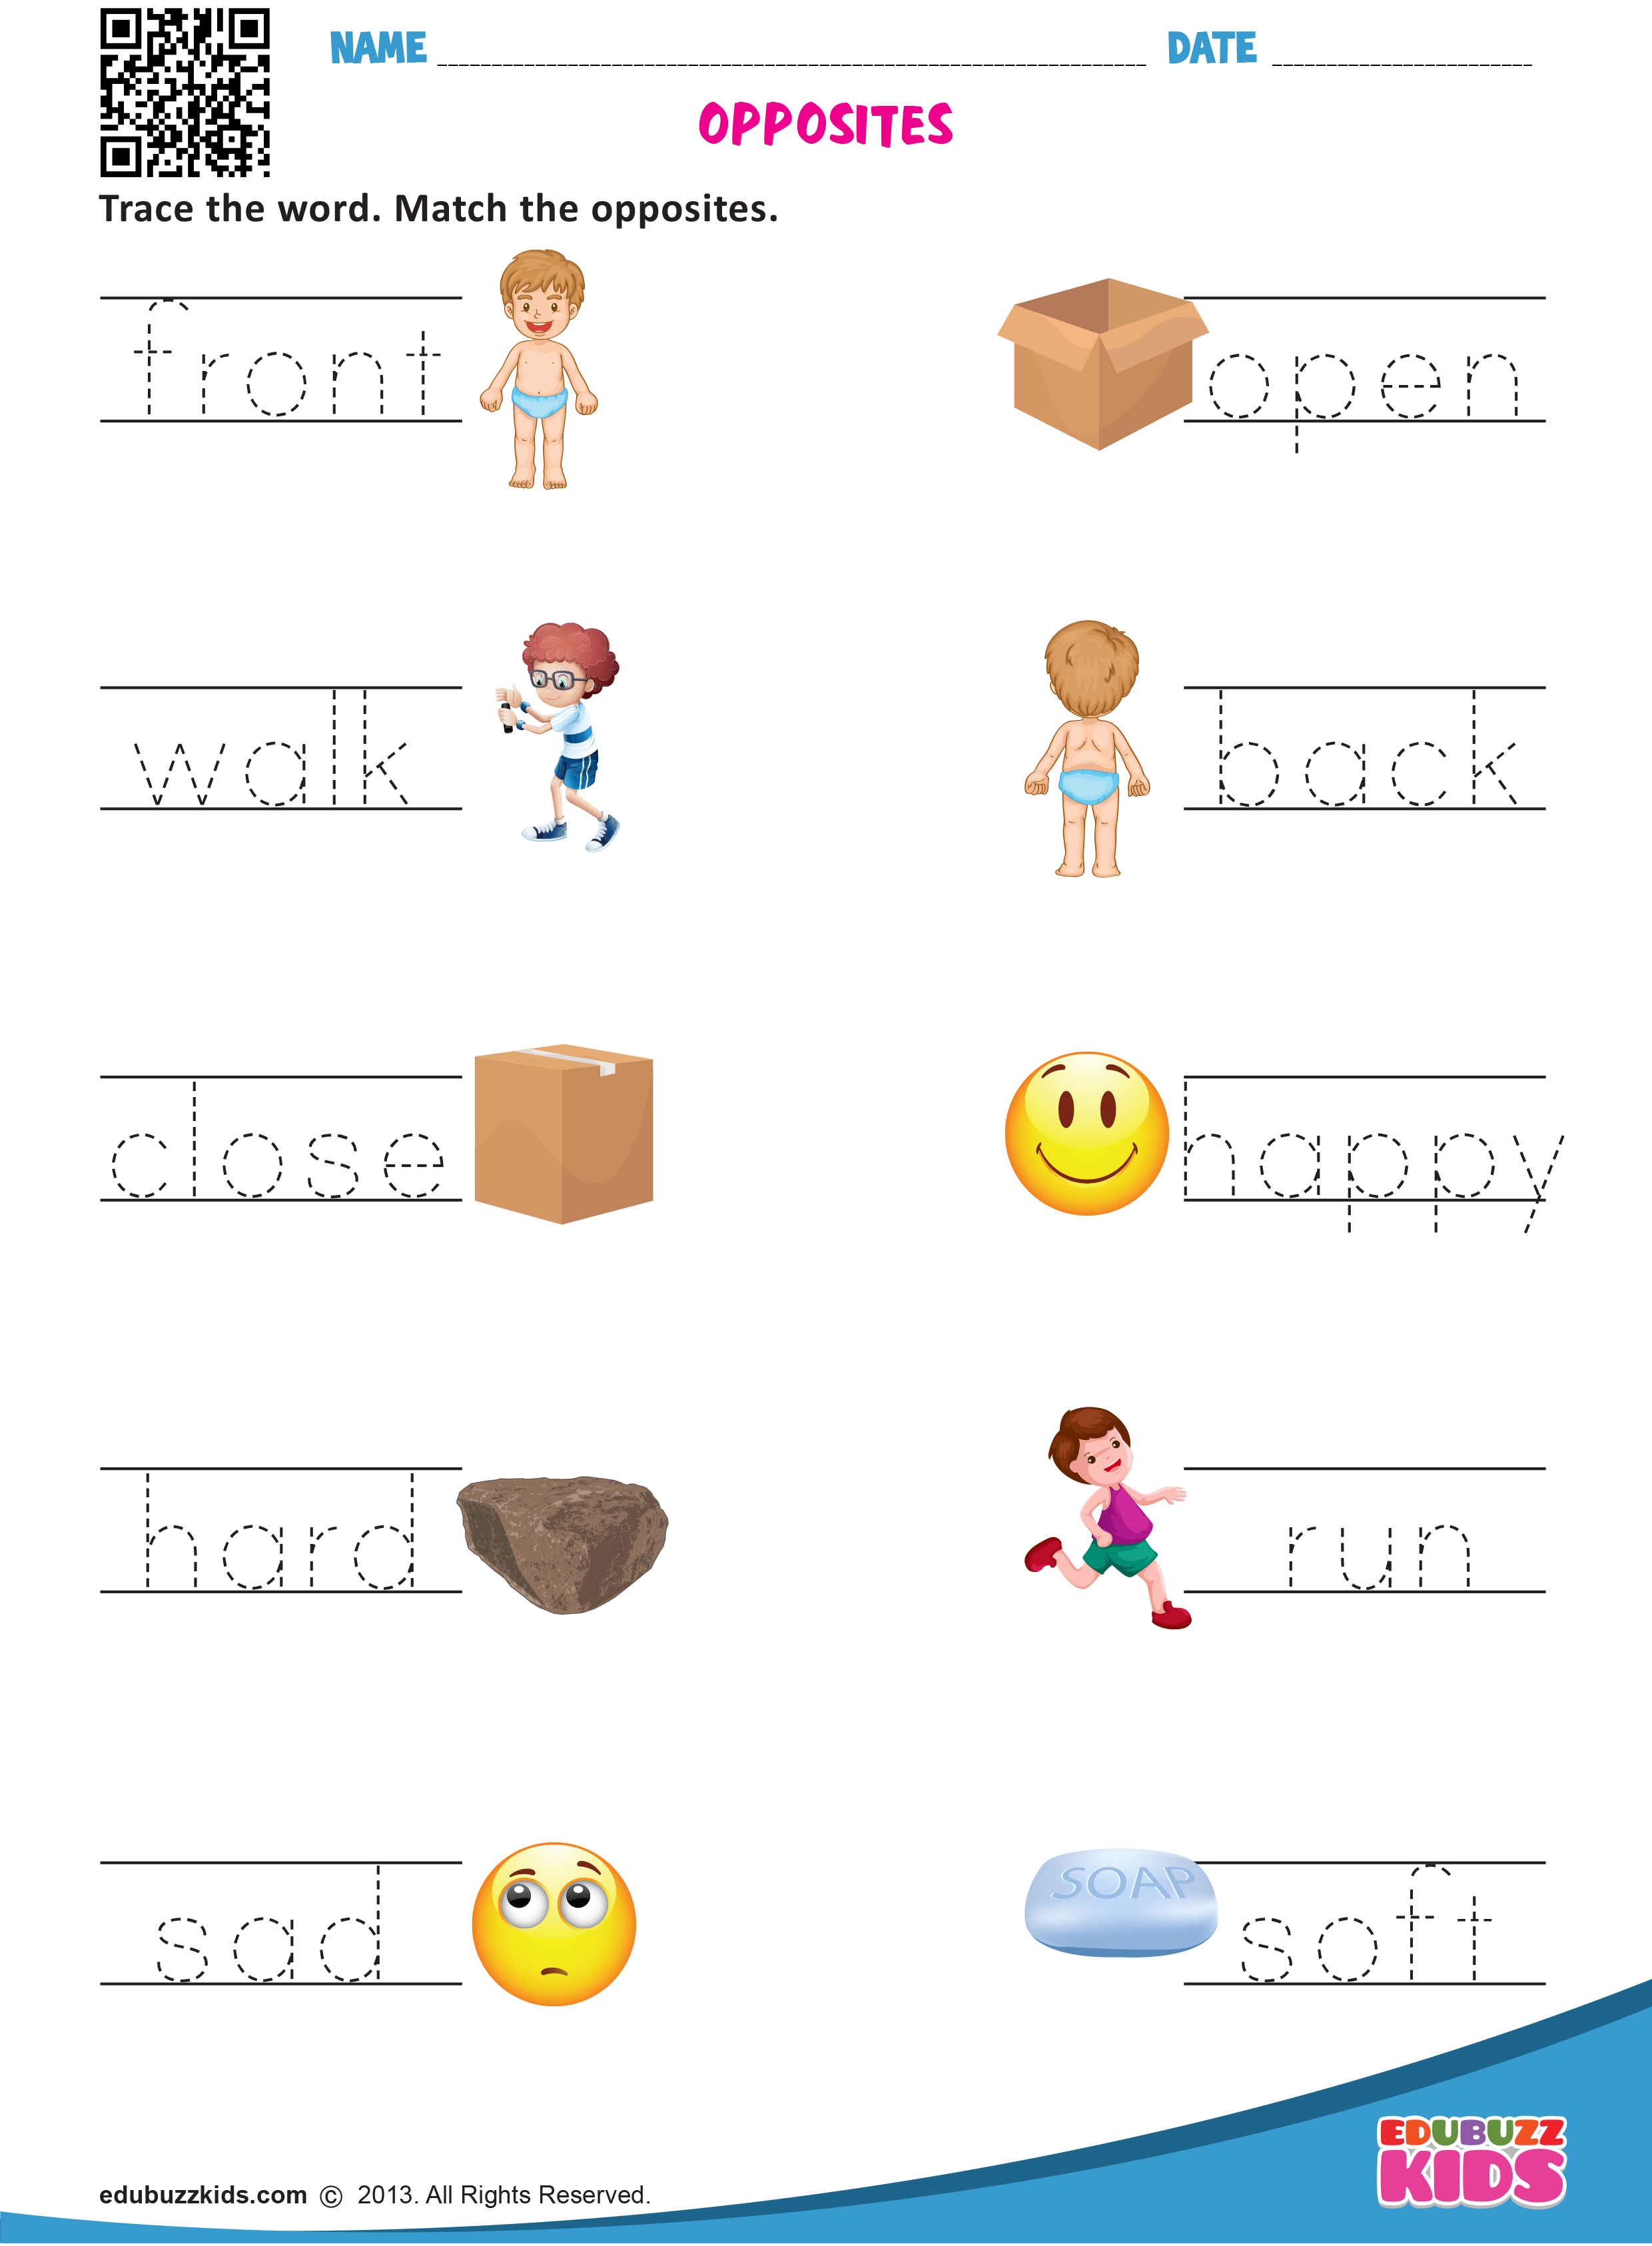 Printable English Opposite Words Worksheets For Preschool